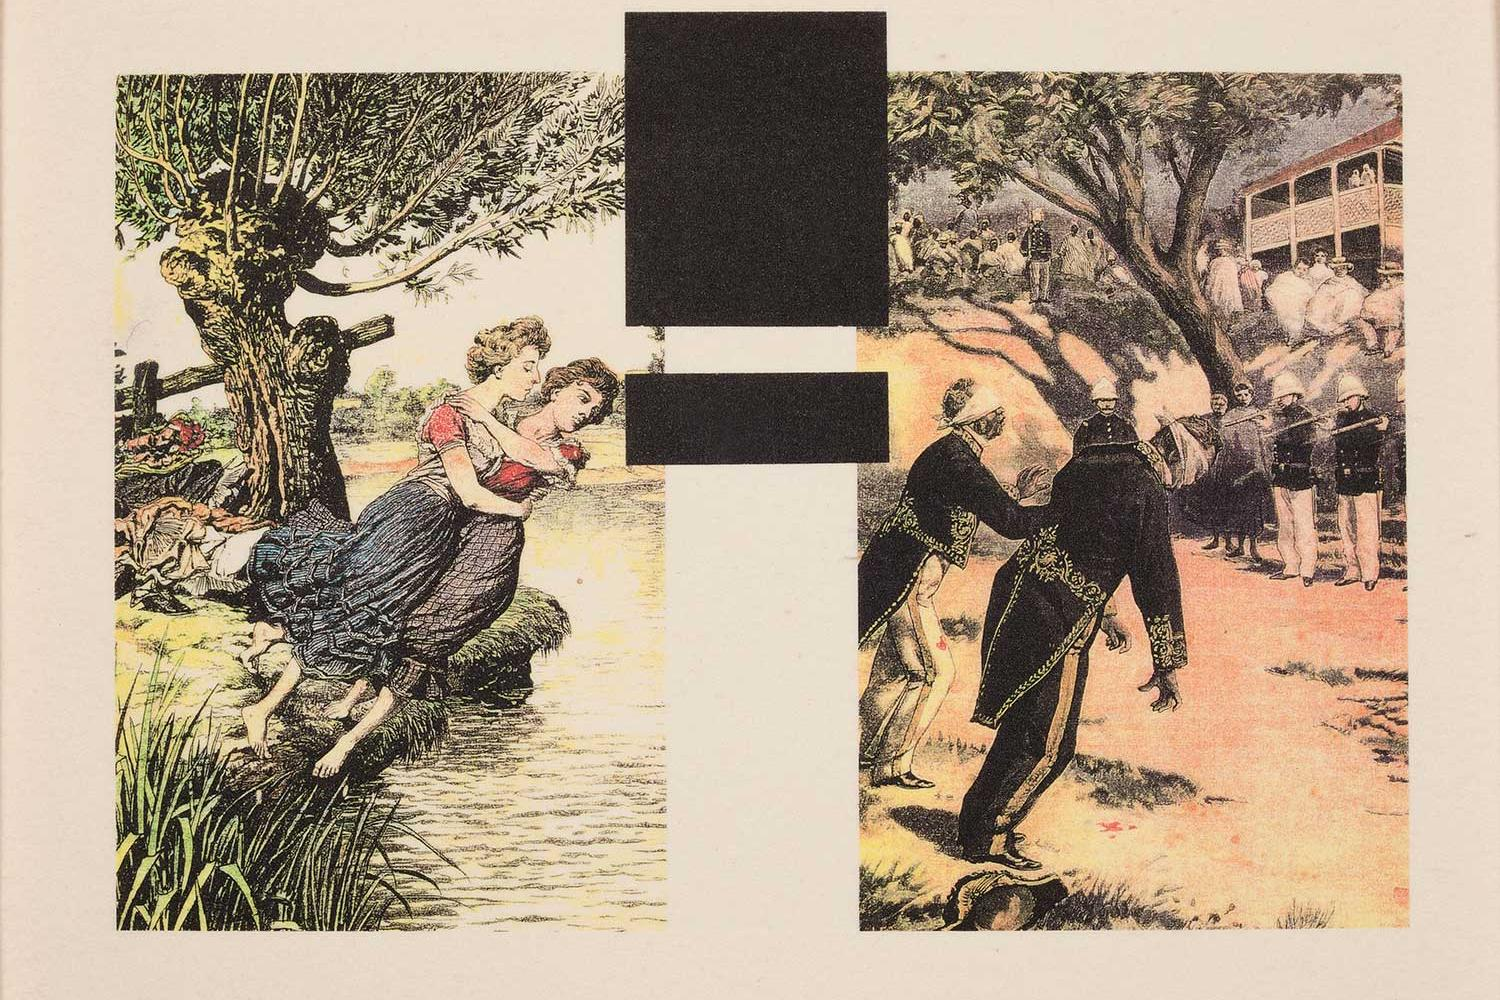 print with two sections, on the right there are two women falling into a river, on the left there are two african american soldiers in front of a firing squad